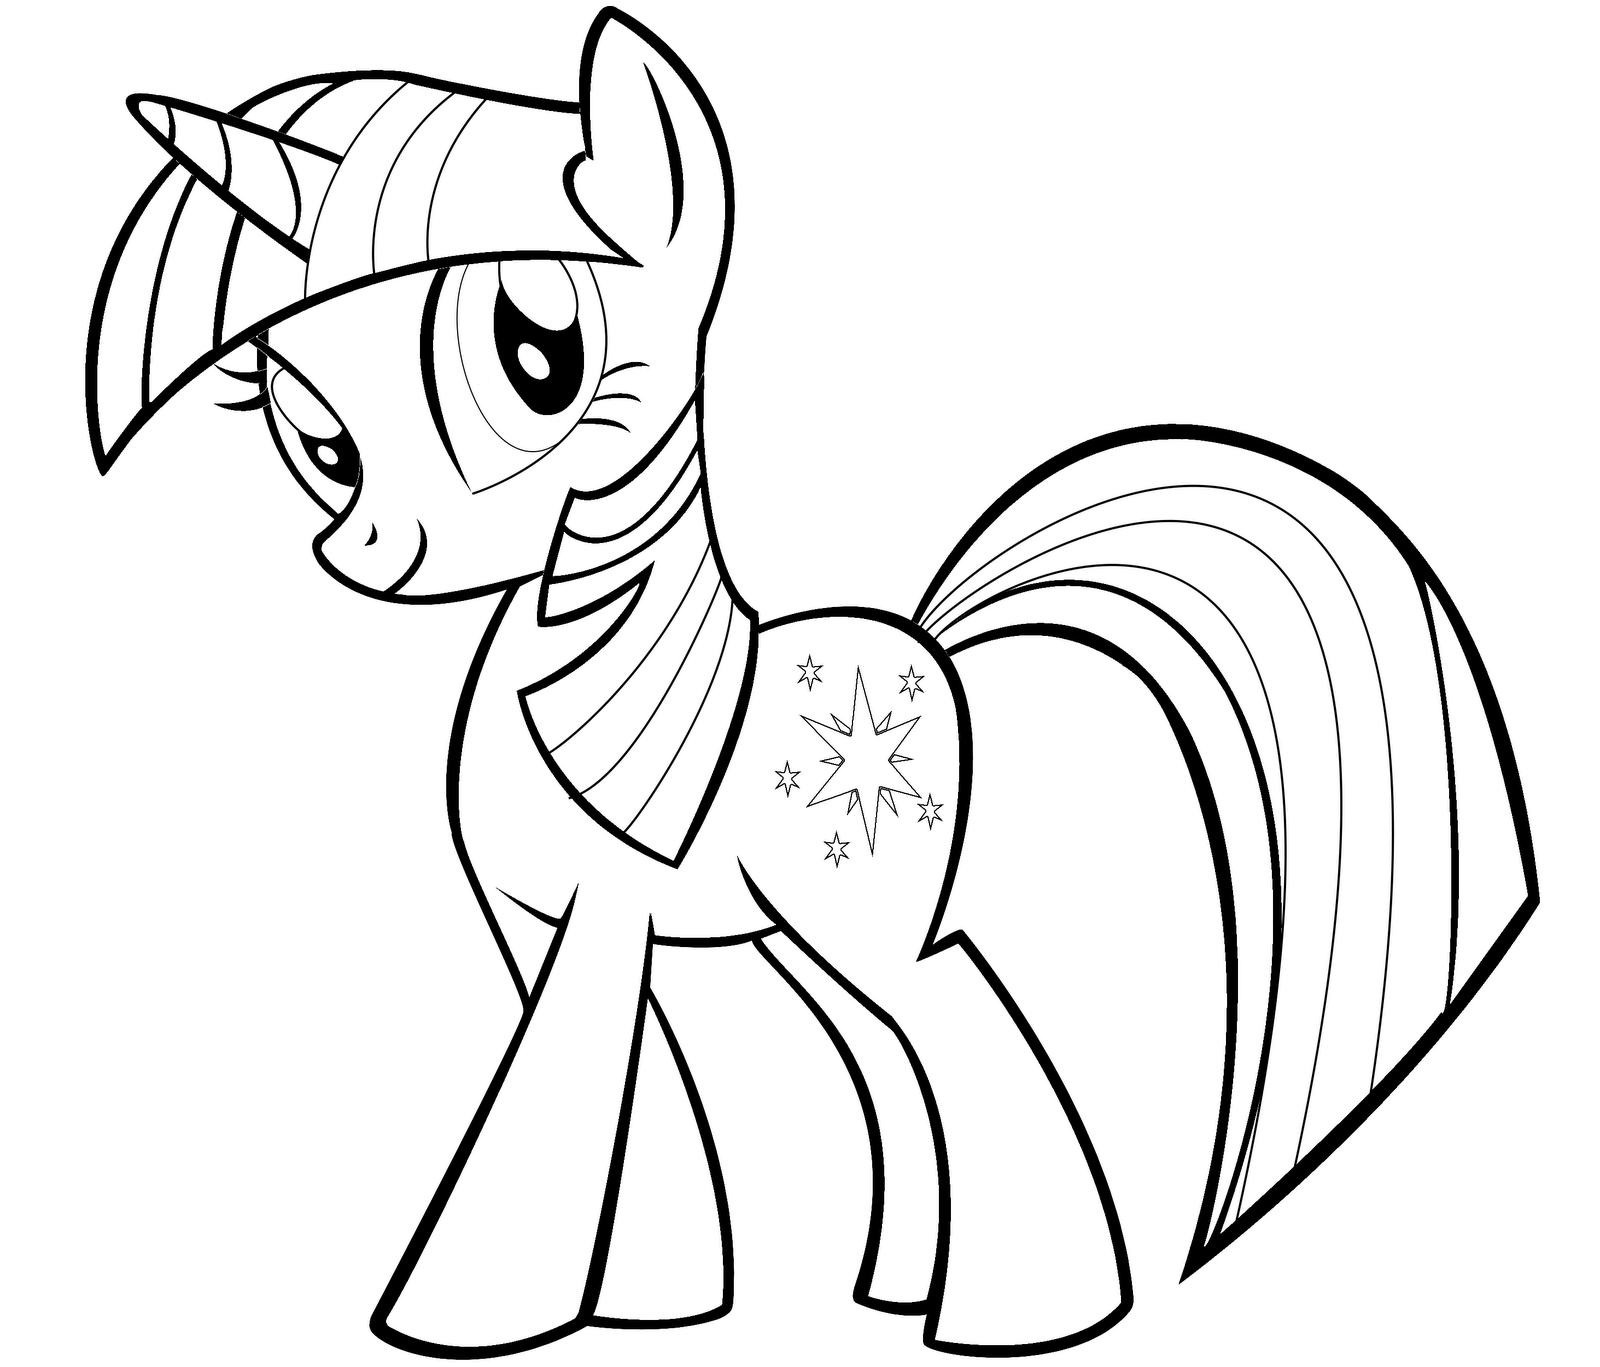 Coloring Pages Of Princess Twilight Sparkle : My little pony twilight sparkle coloring pages